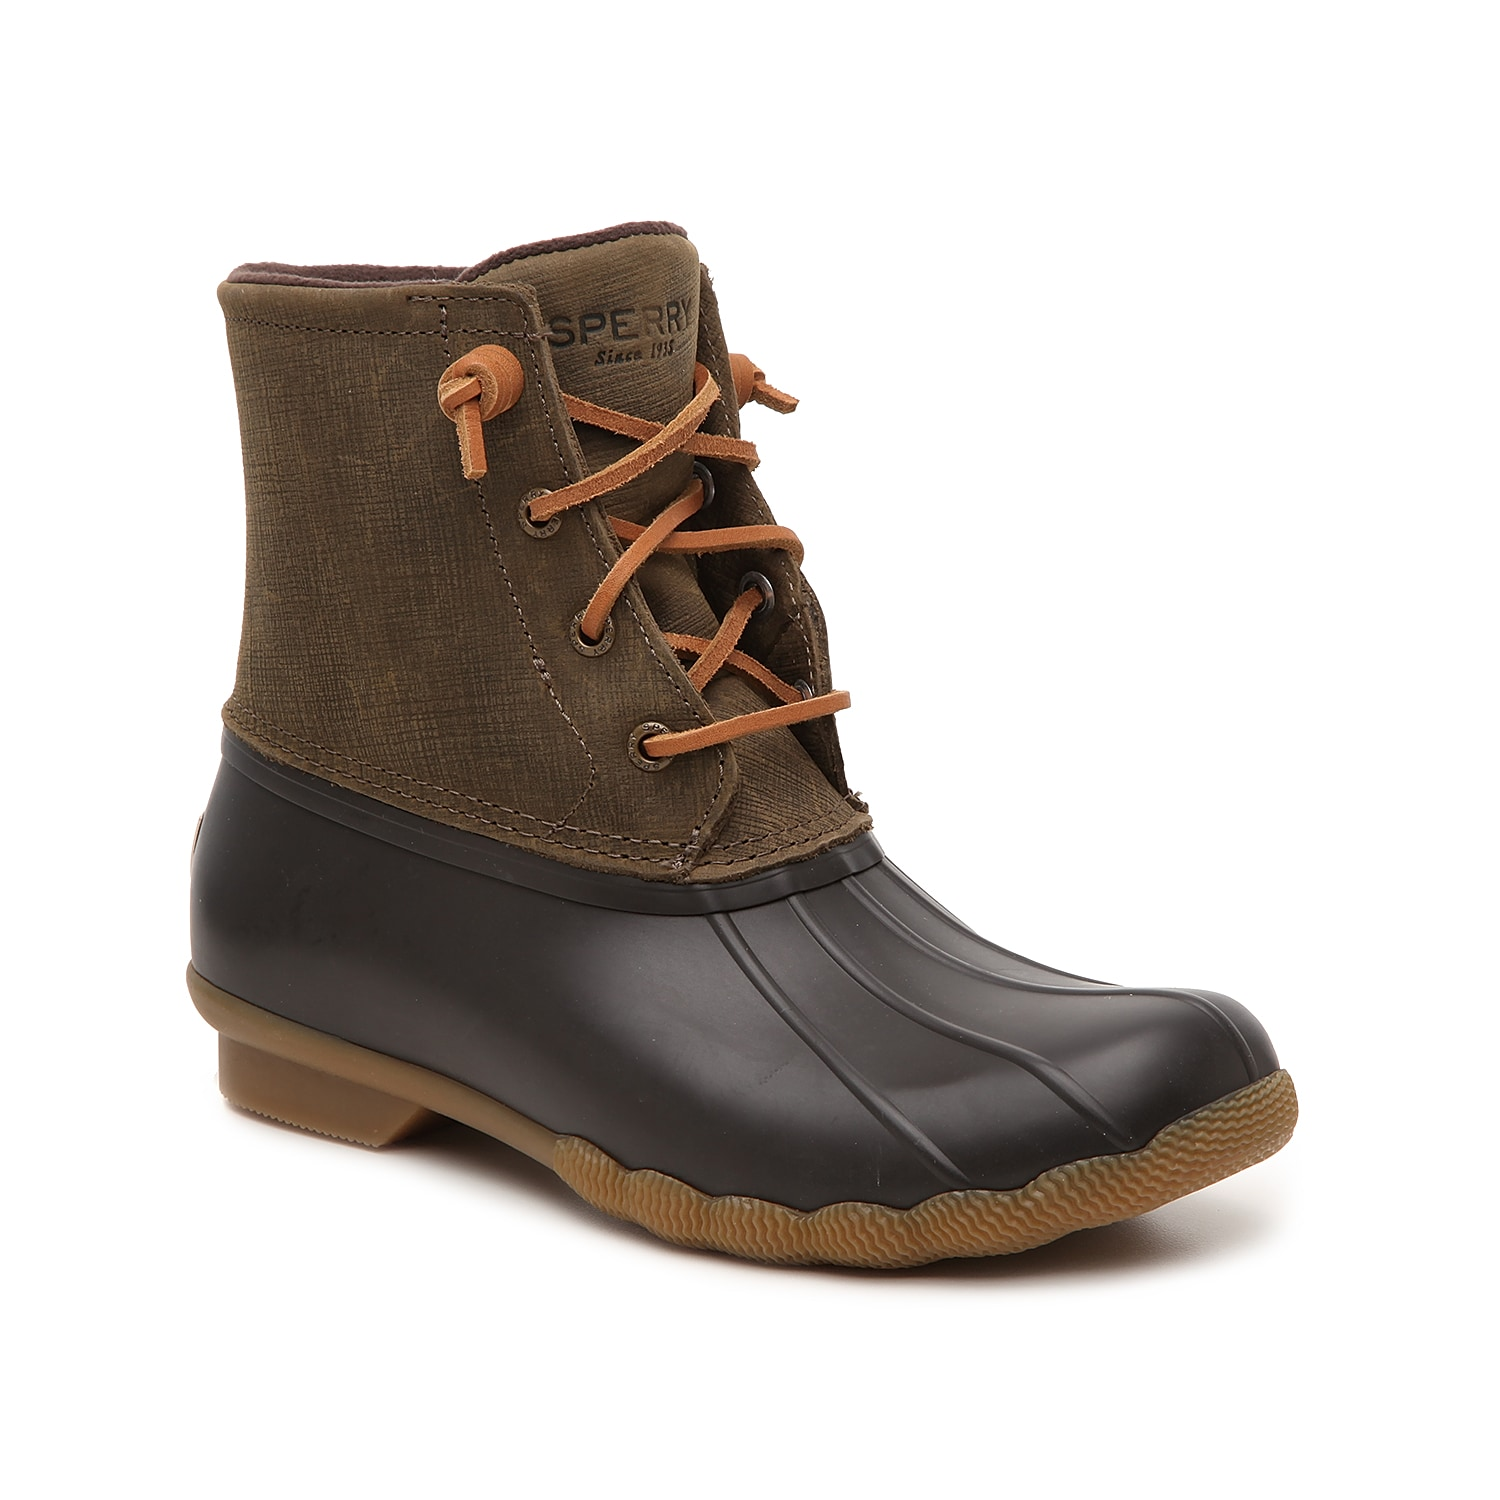 Zip up in these waterproof winter boots from Sperry to complete your cold weather look! With a trendy duck boot design, the Saltwater snow boots will keep you cute and cozy all season long! Click here for Boot Measuring Guide.